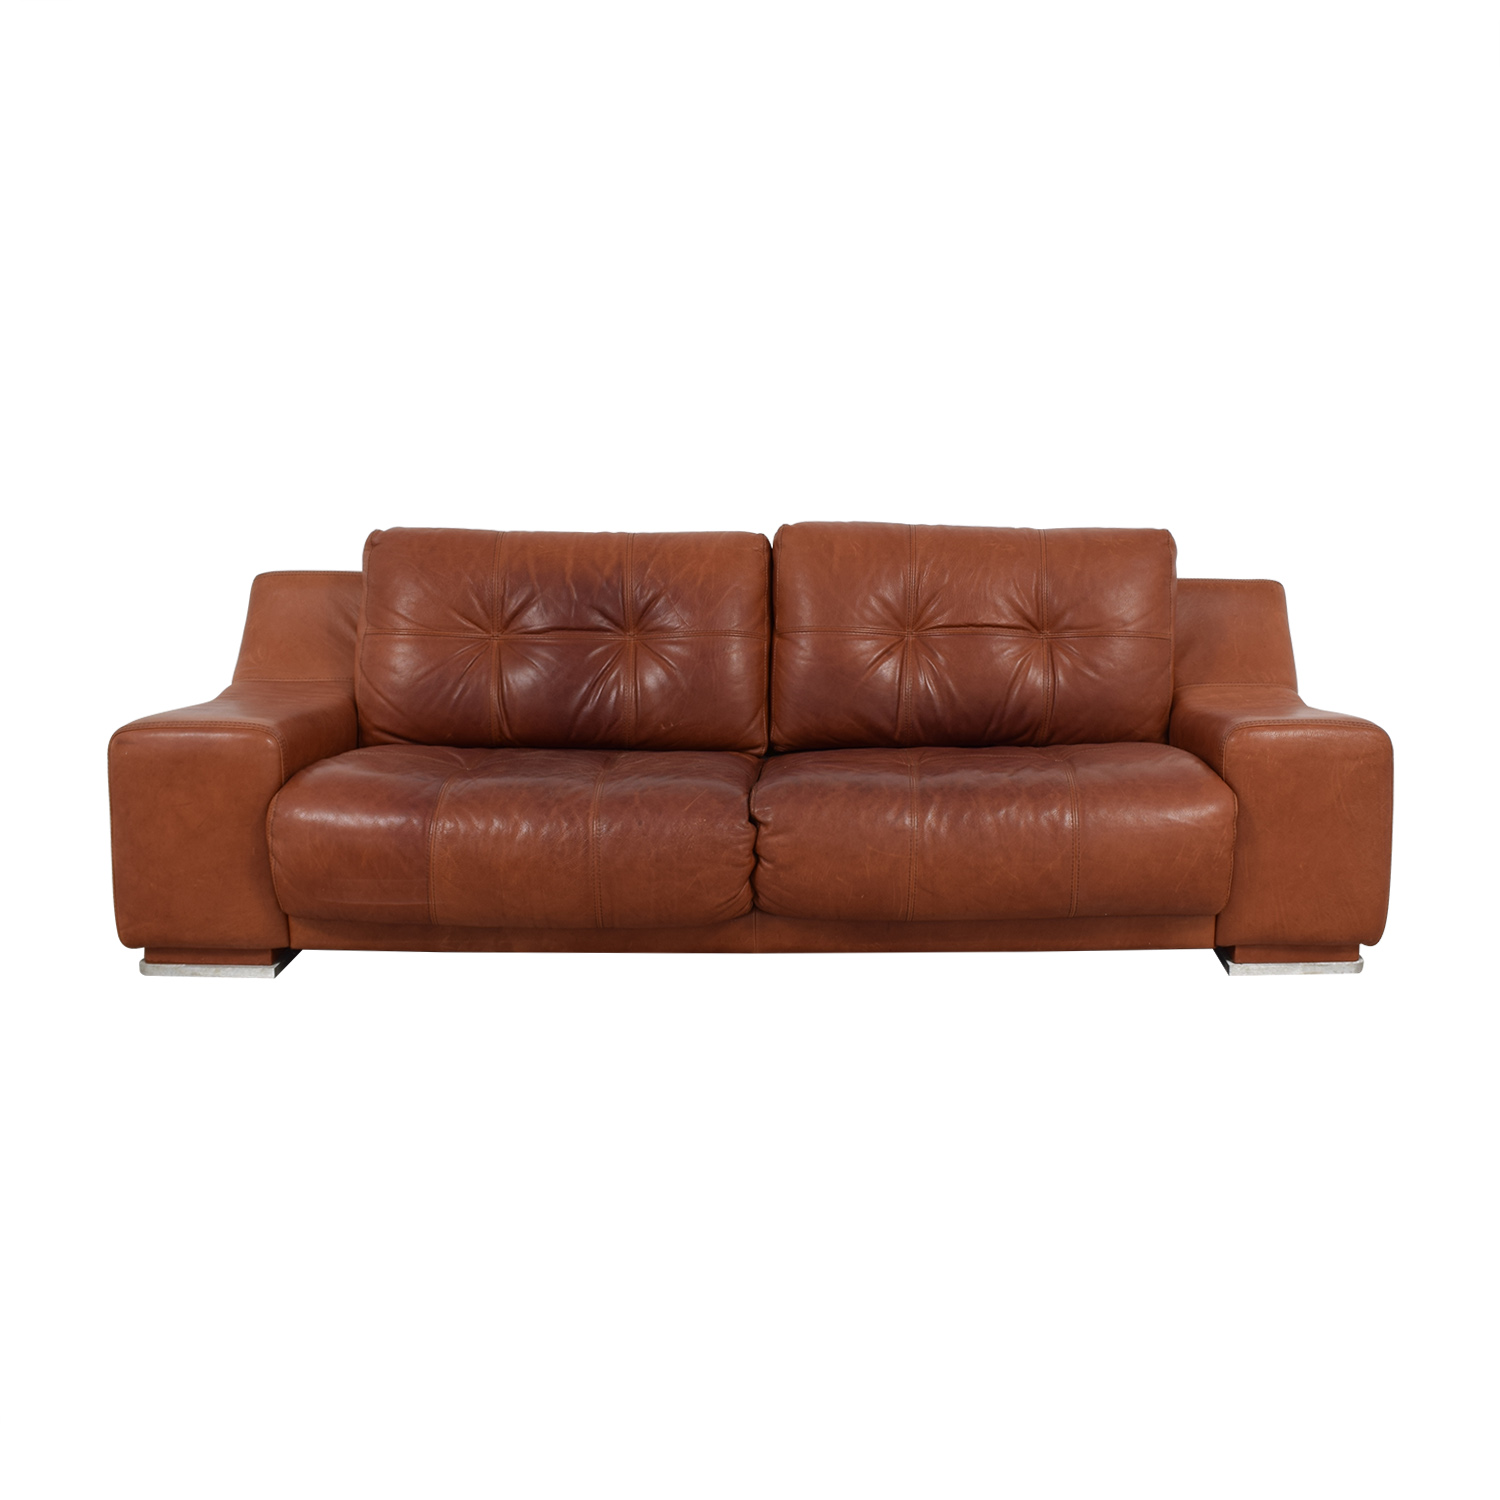 Contempo Contempo Leather Sofa coupon